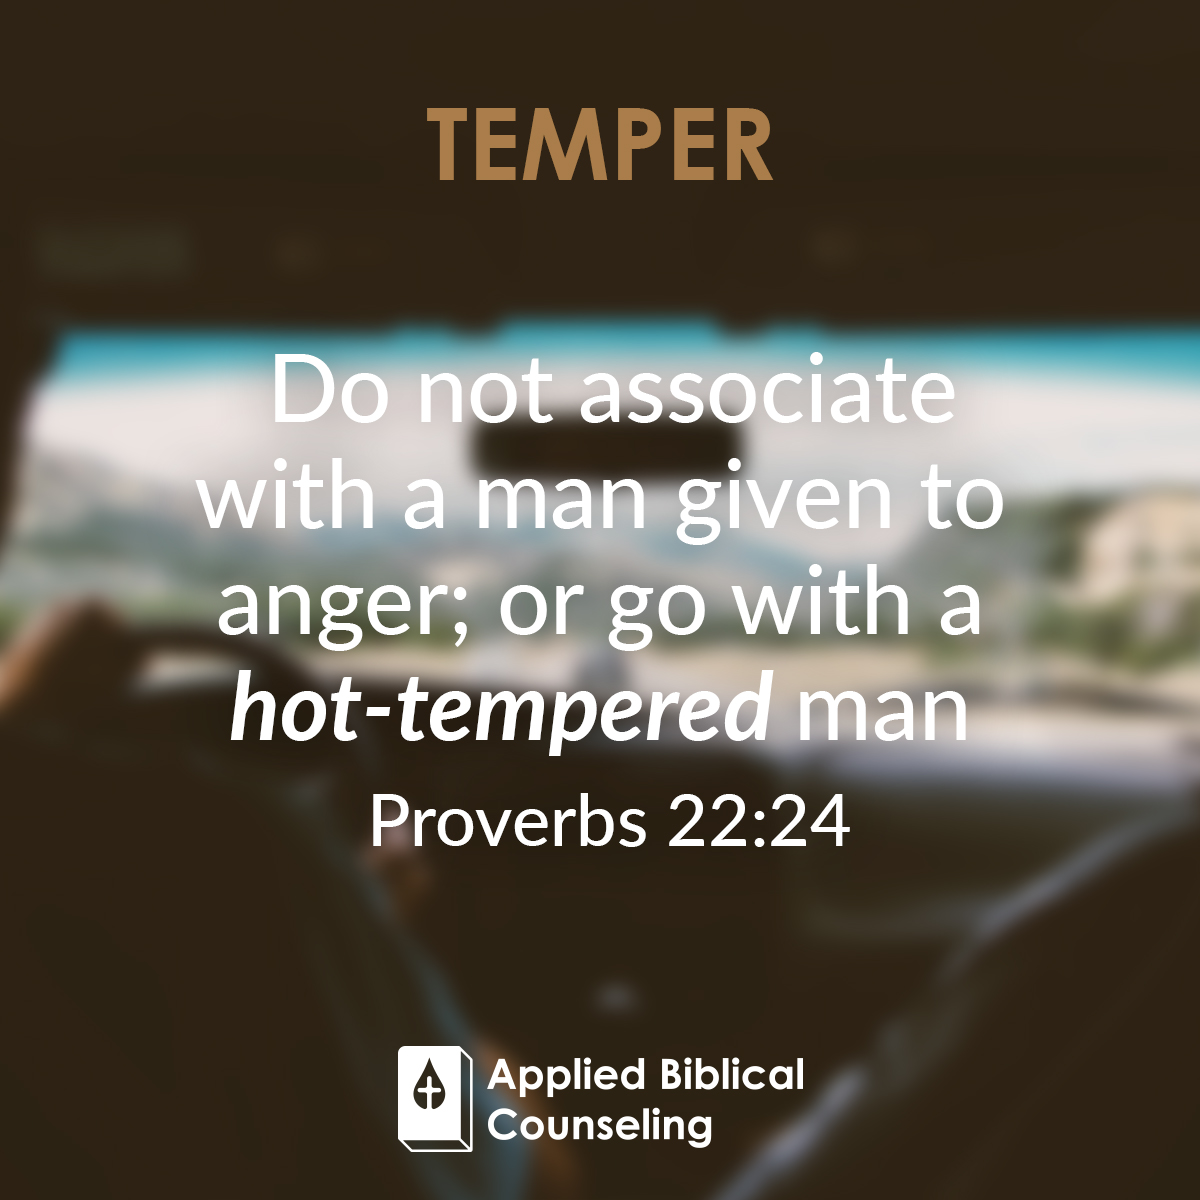 Temper Applied Biblical Counseling 1